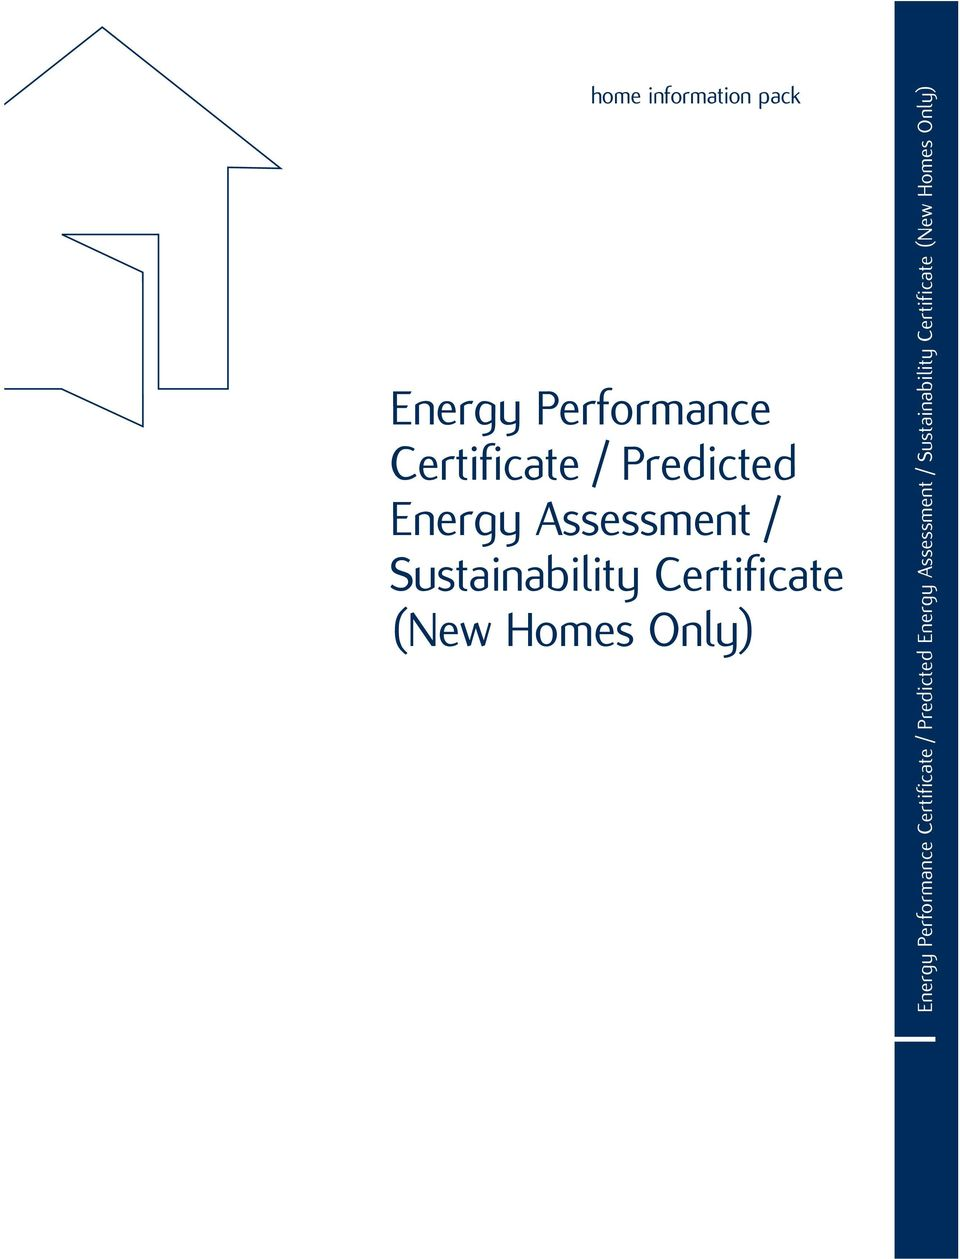 (New Homes Only) Energy Performance Certificate /  (New